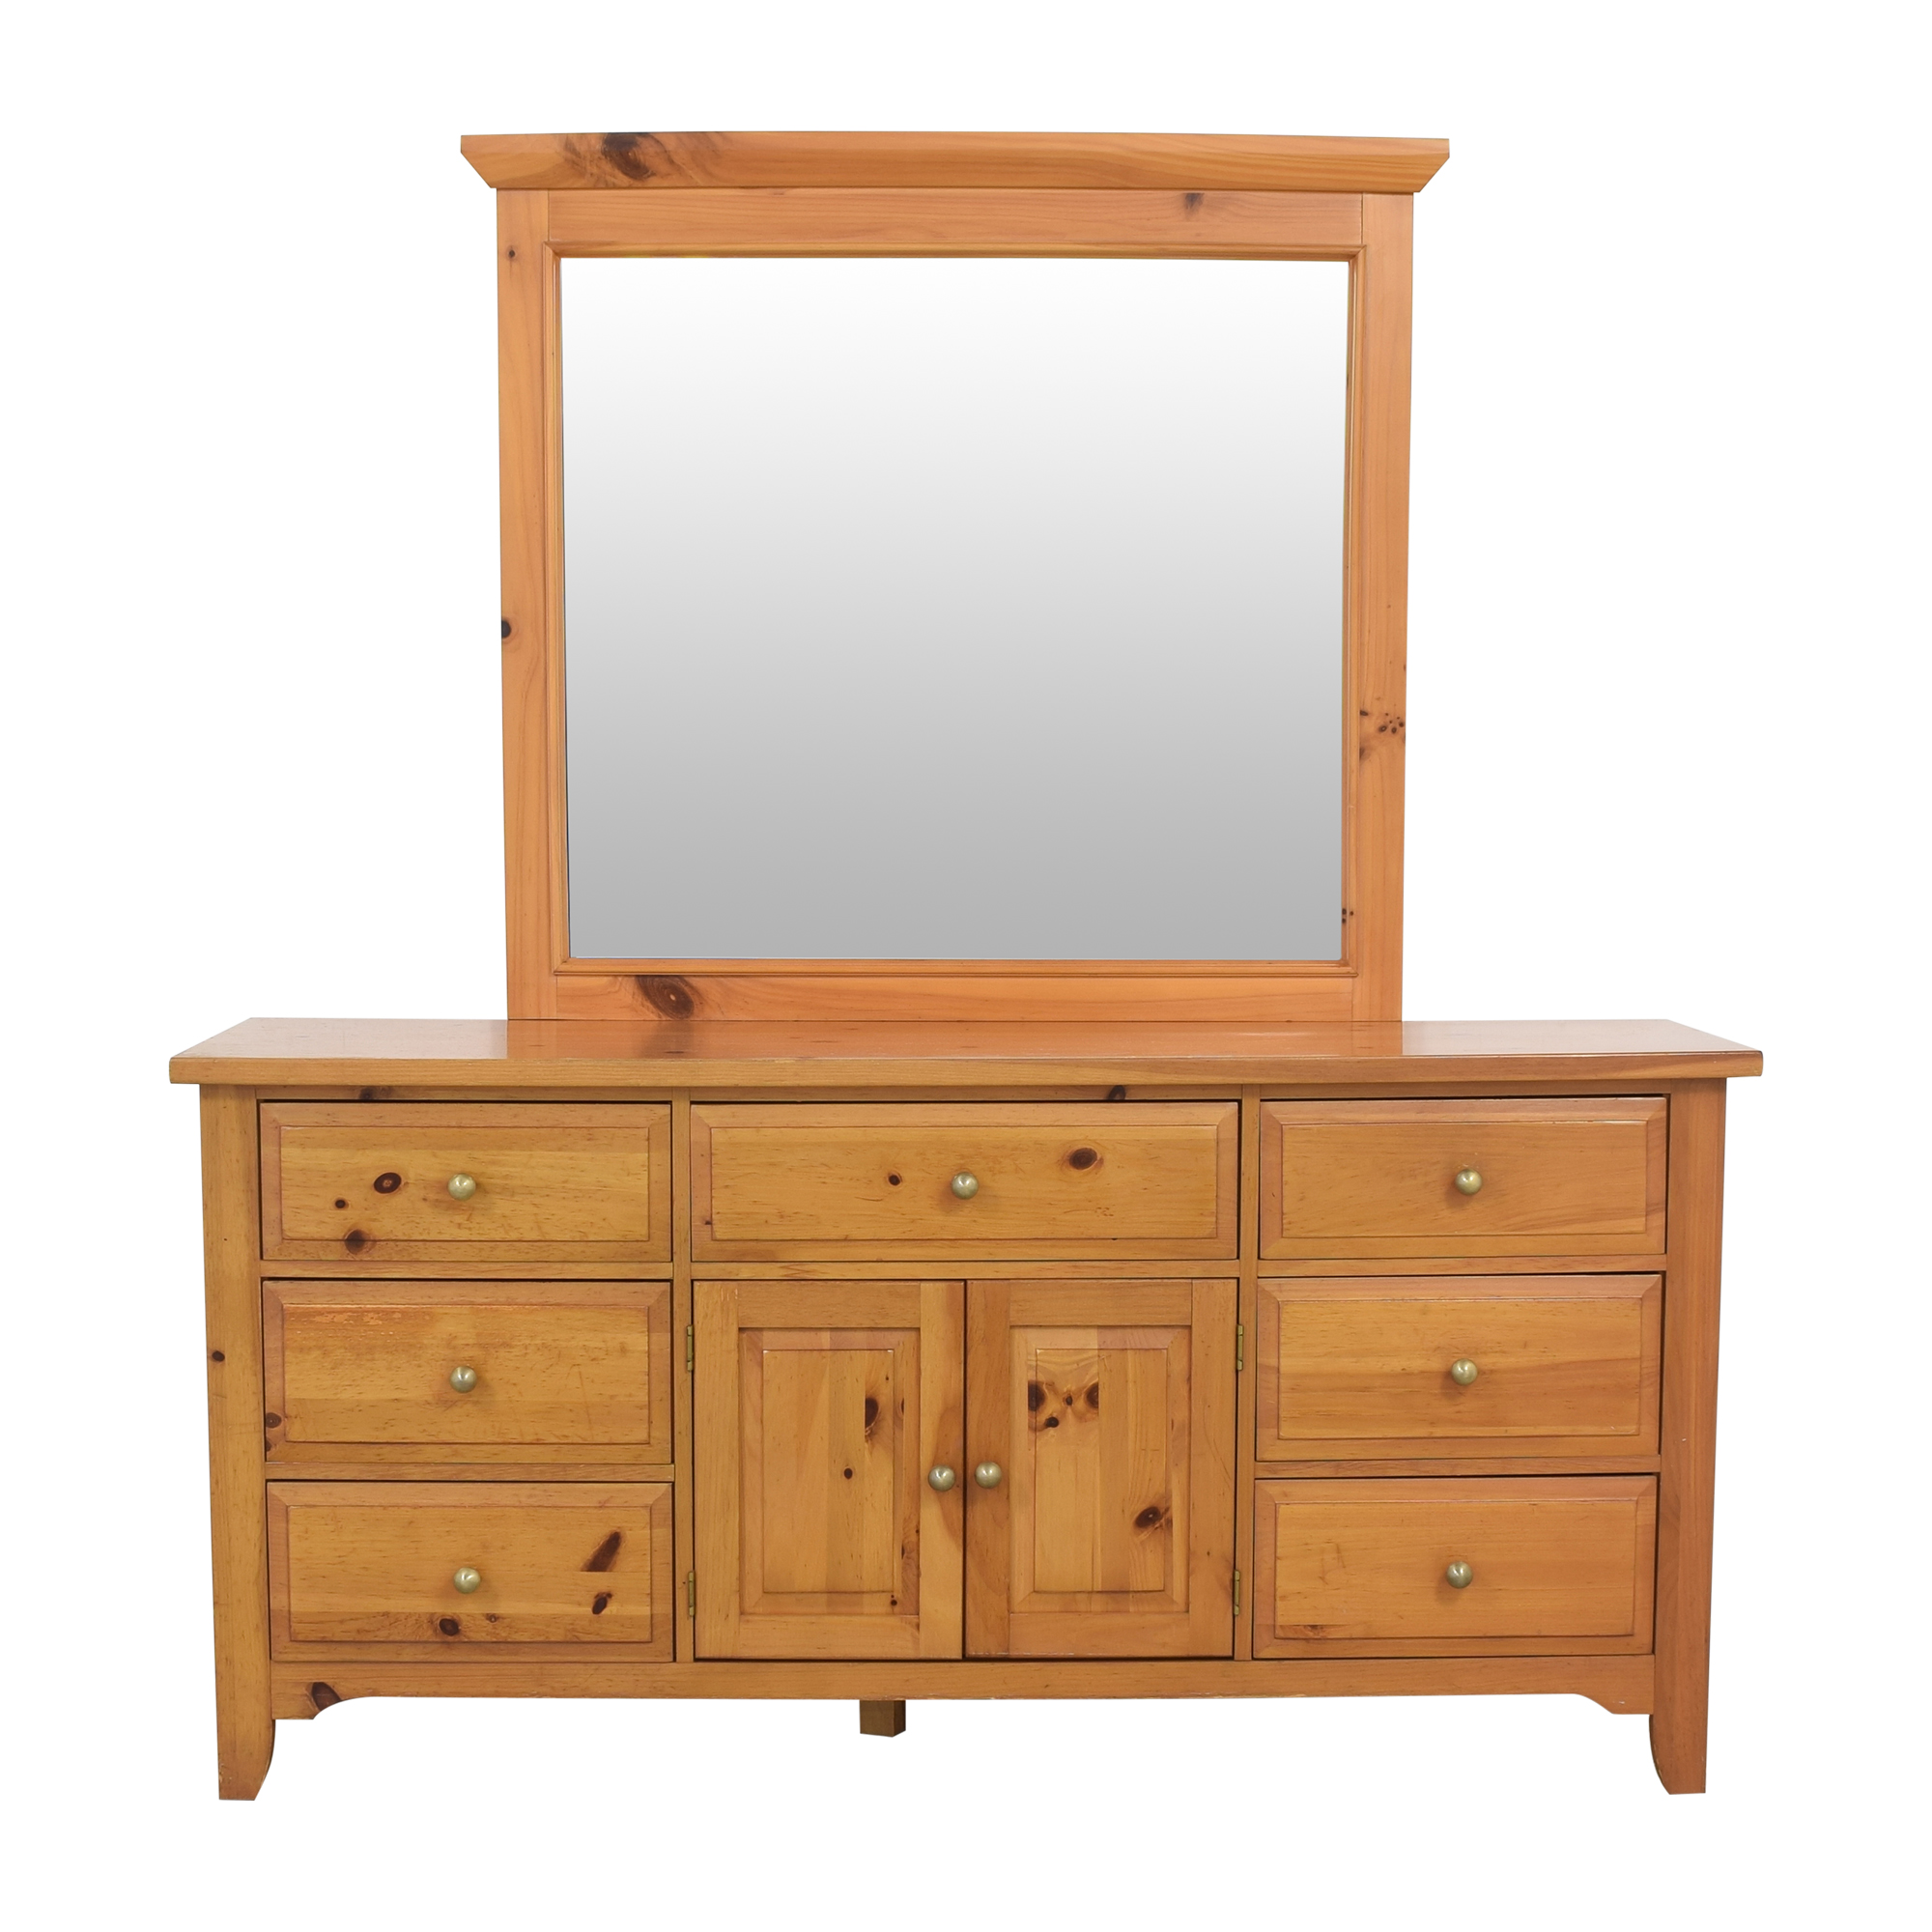 Broyhill Furniture Broyhill Shaker Style Dresser and Mirror used